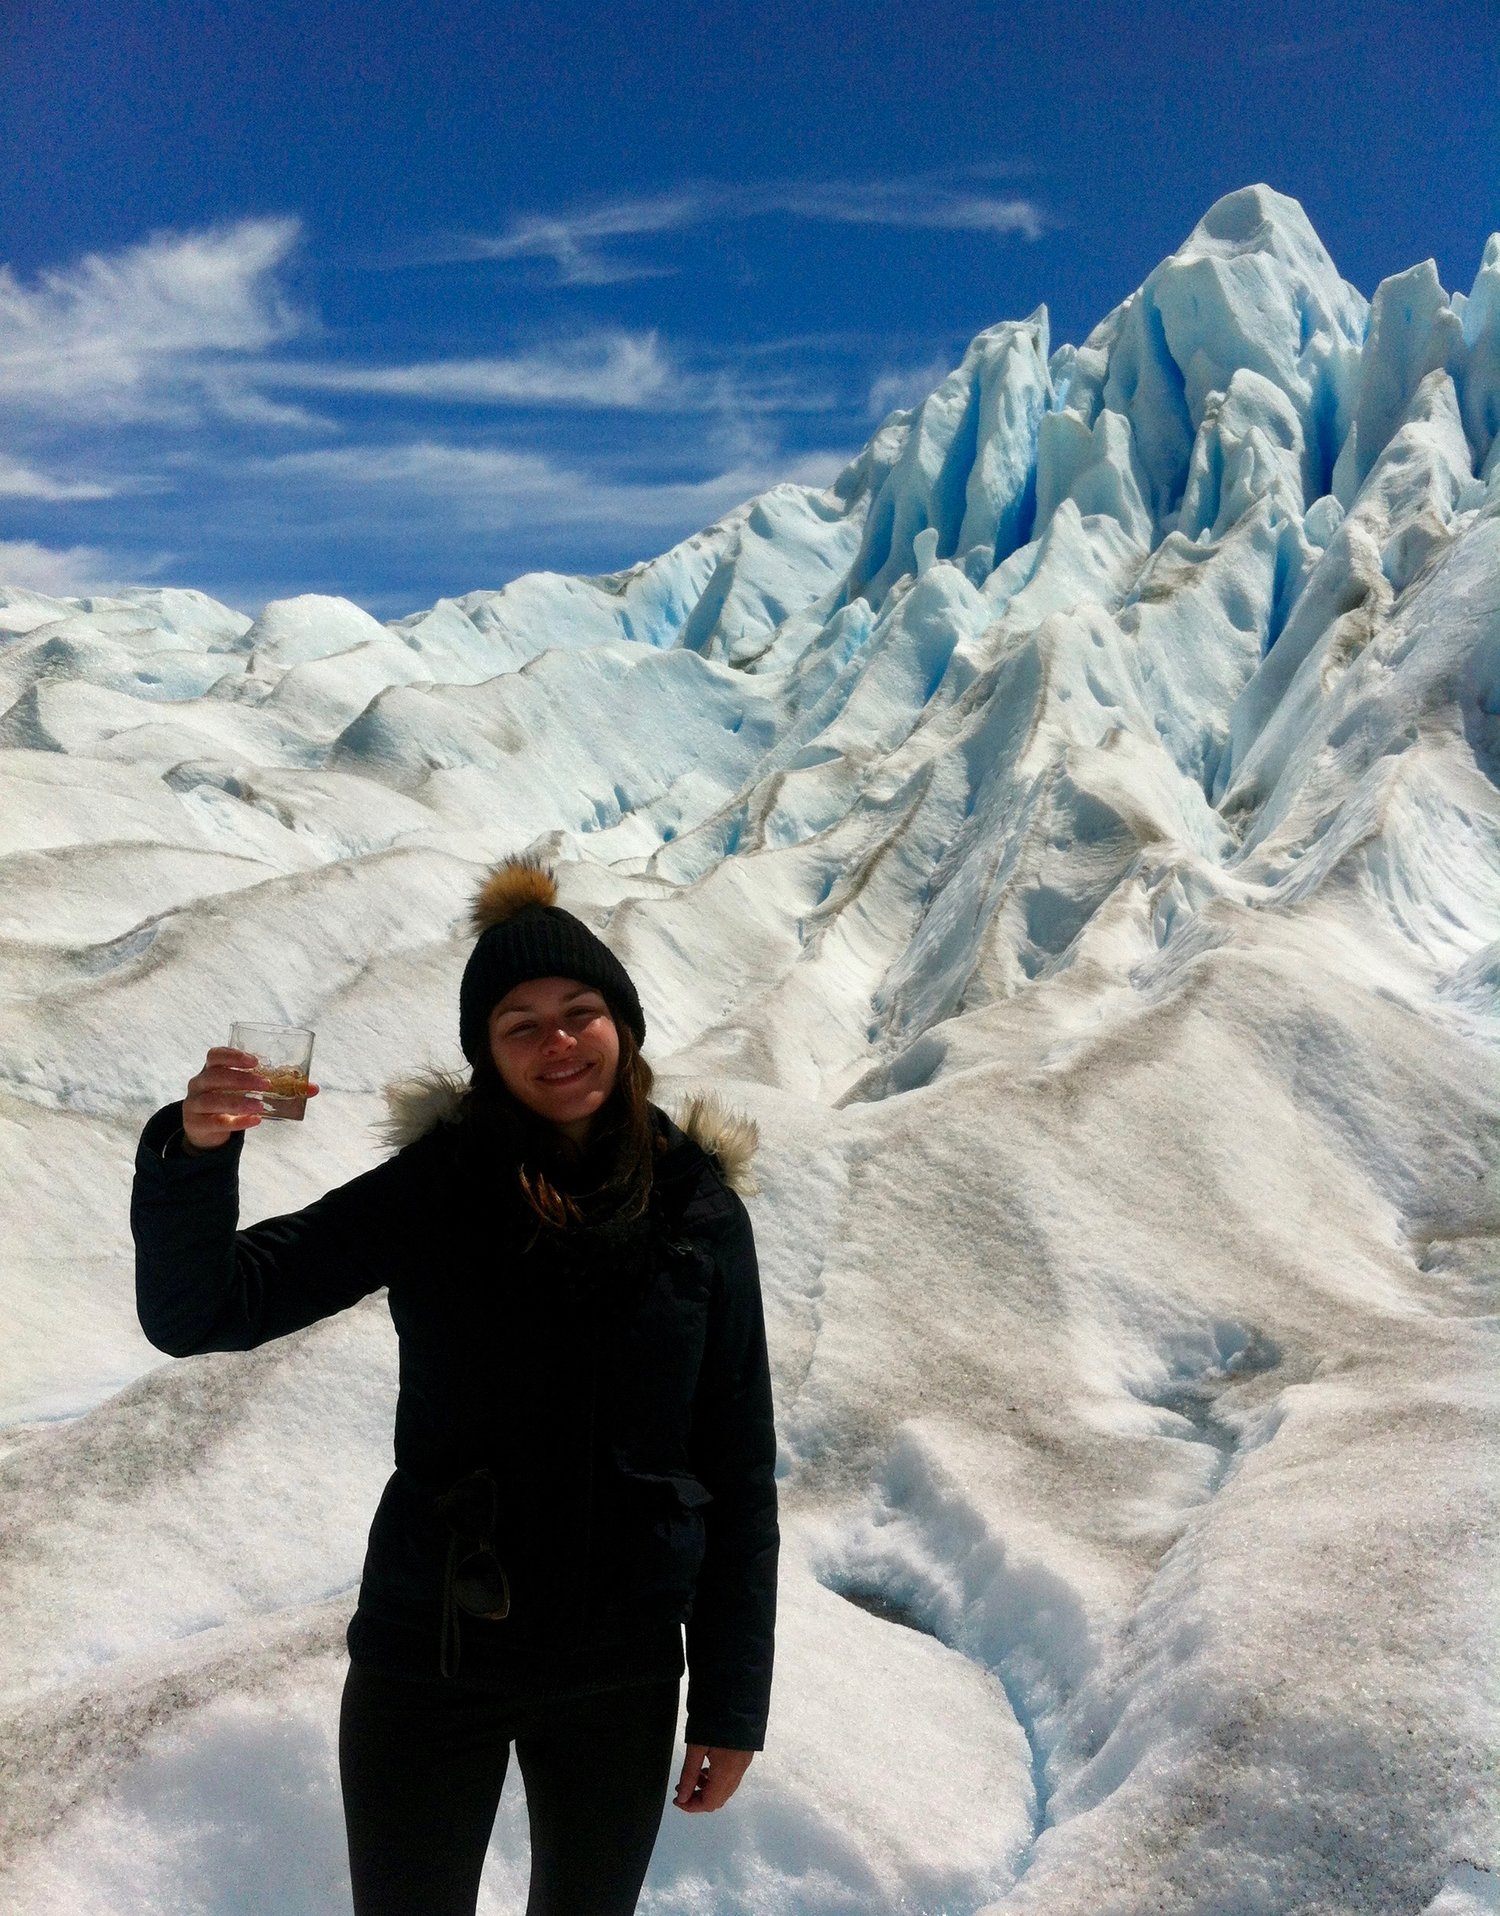 El Calafate photo